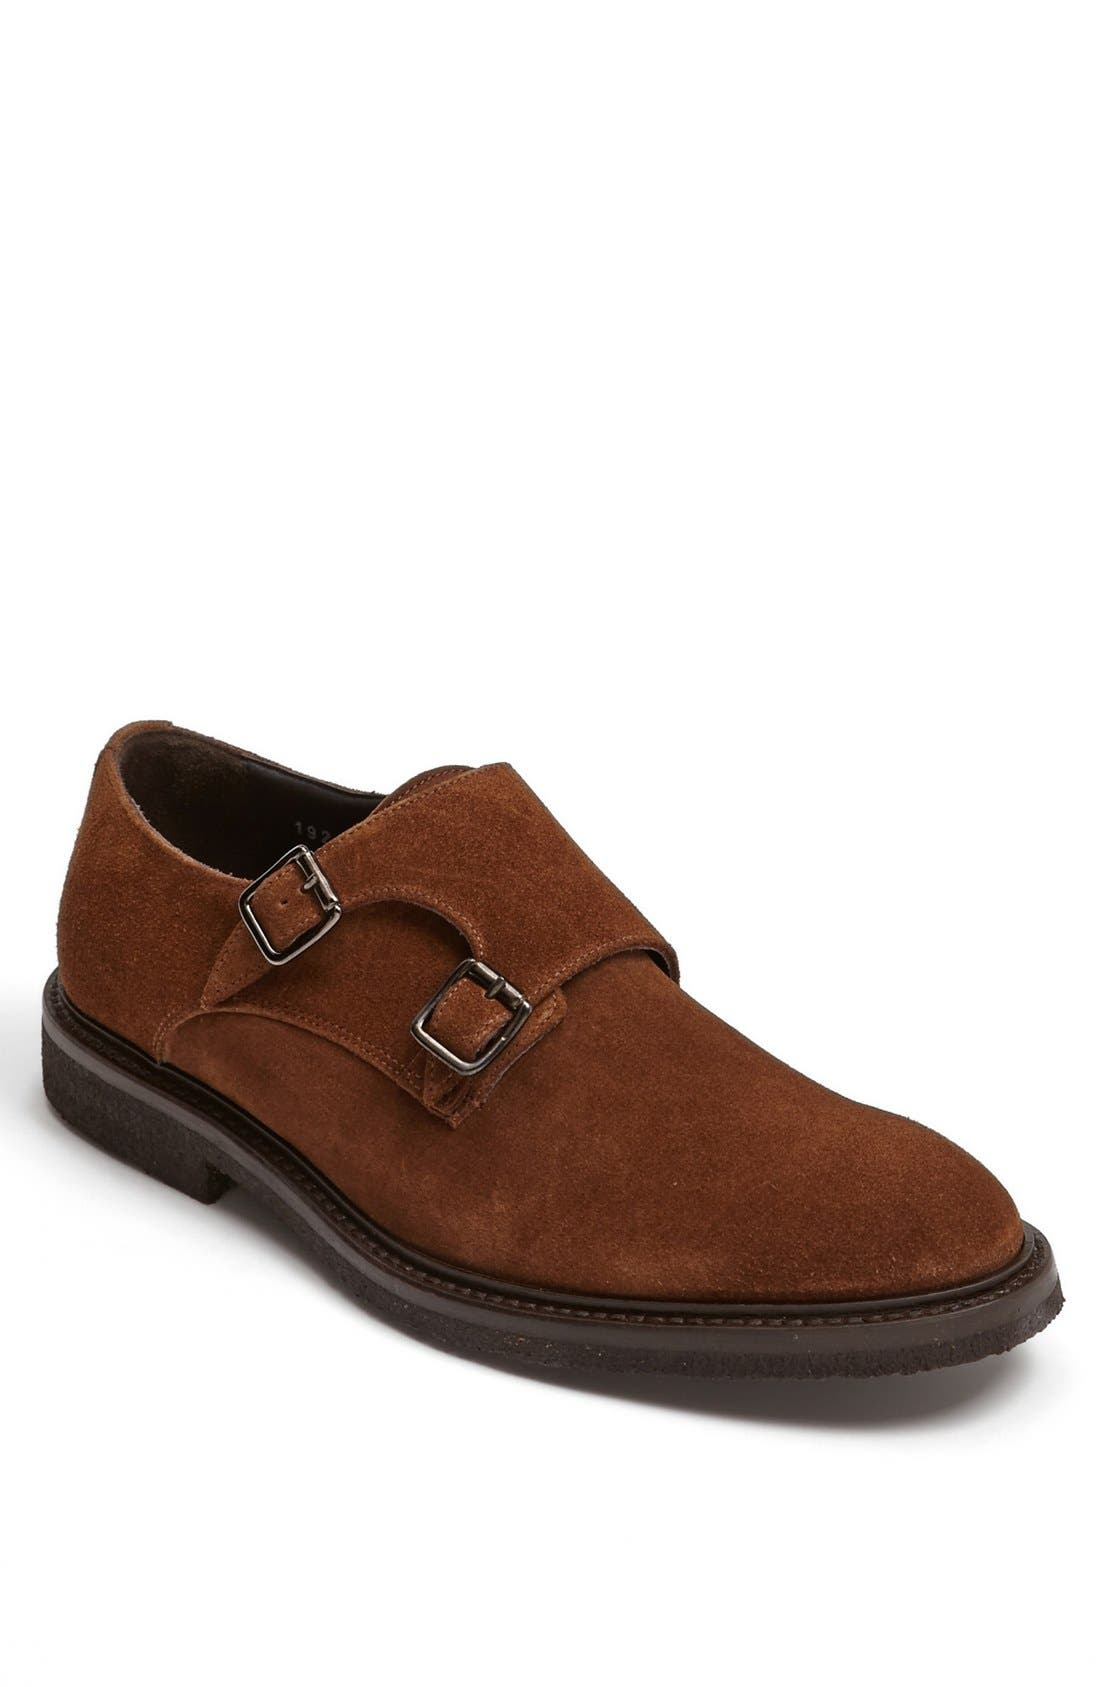 Main Image - To Boot New York 'Dunham' Double Monk Slip-On